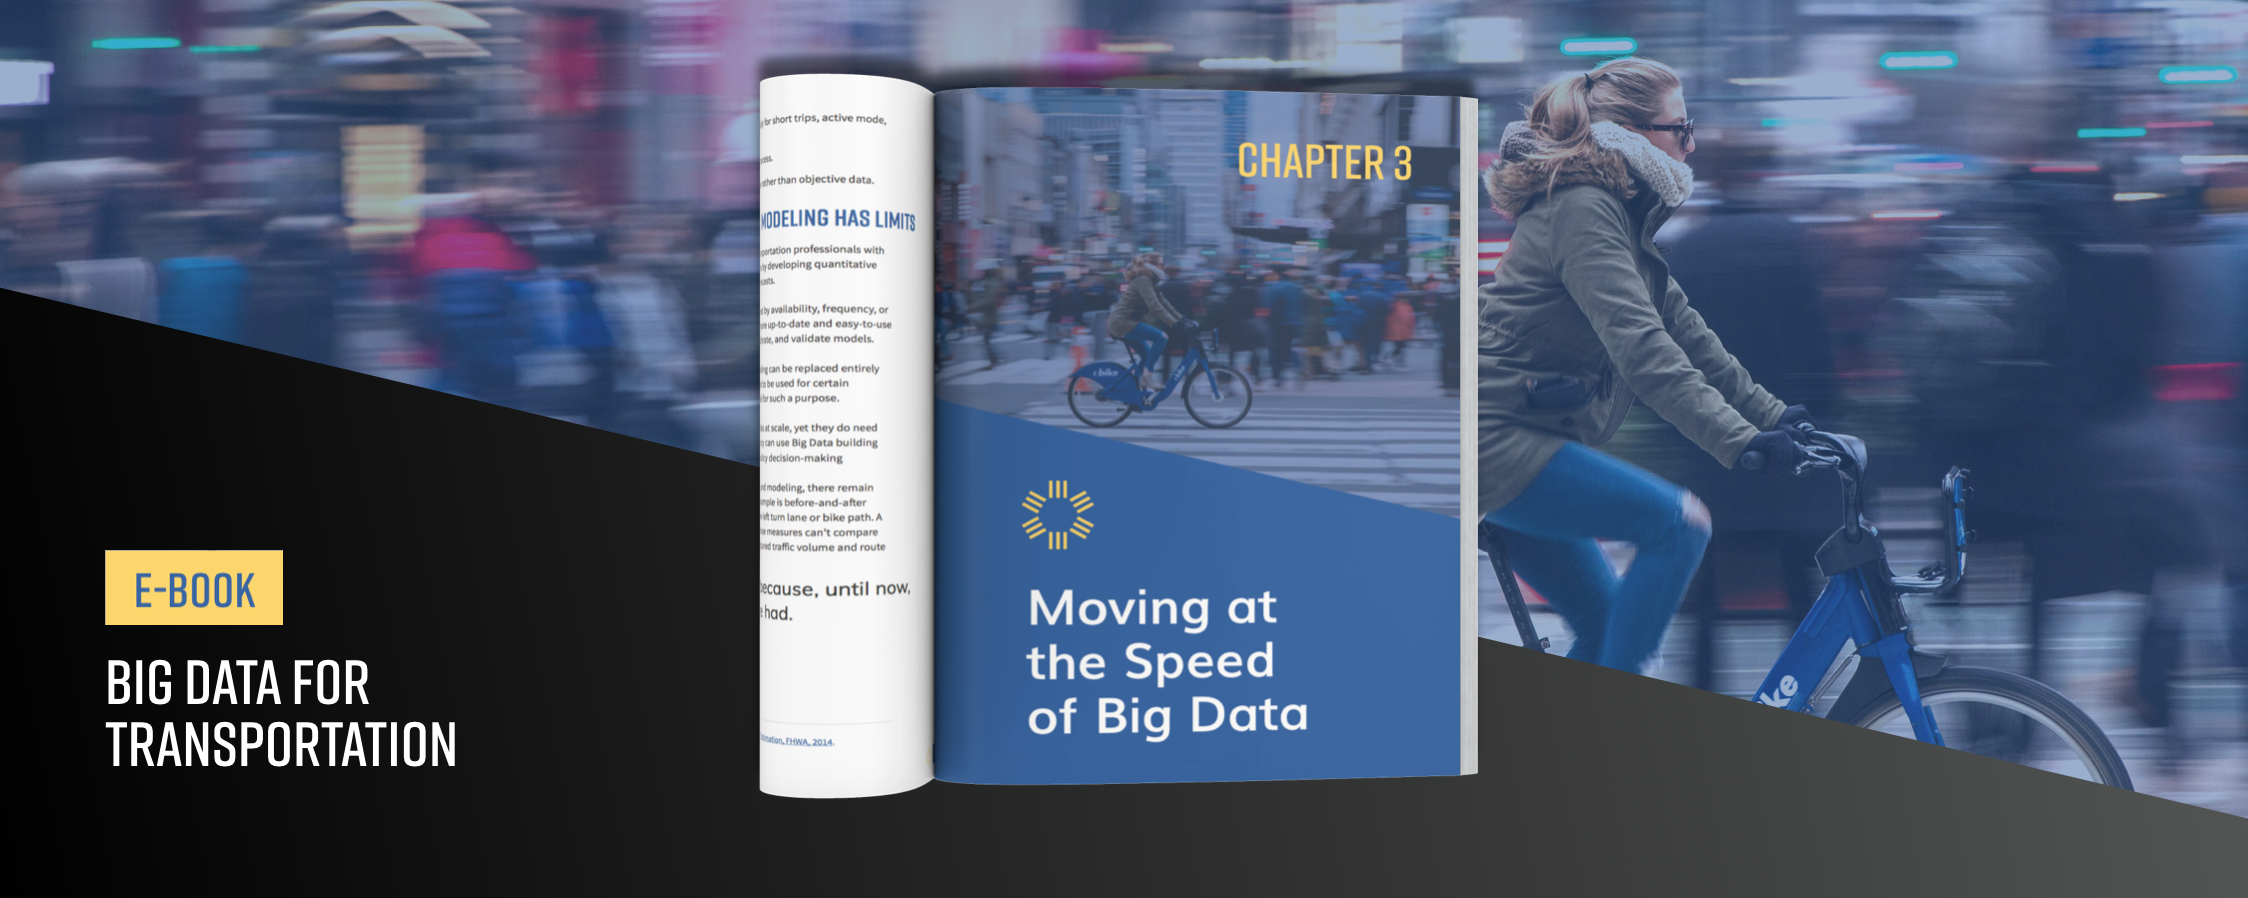 big-data-for-transportation-chapter-3